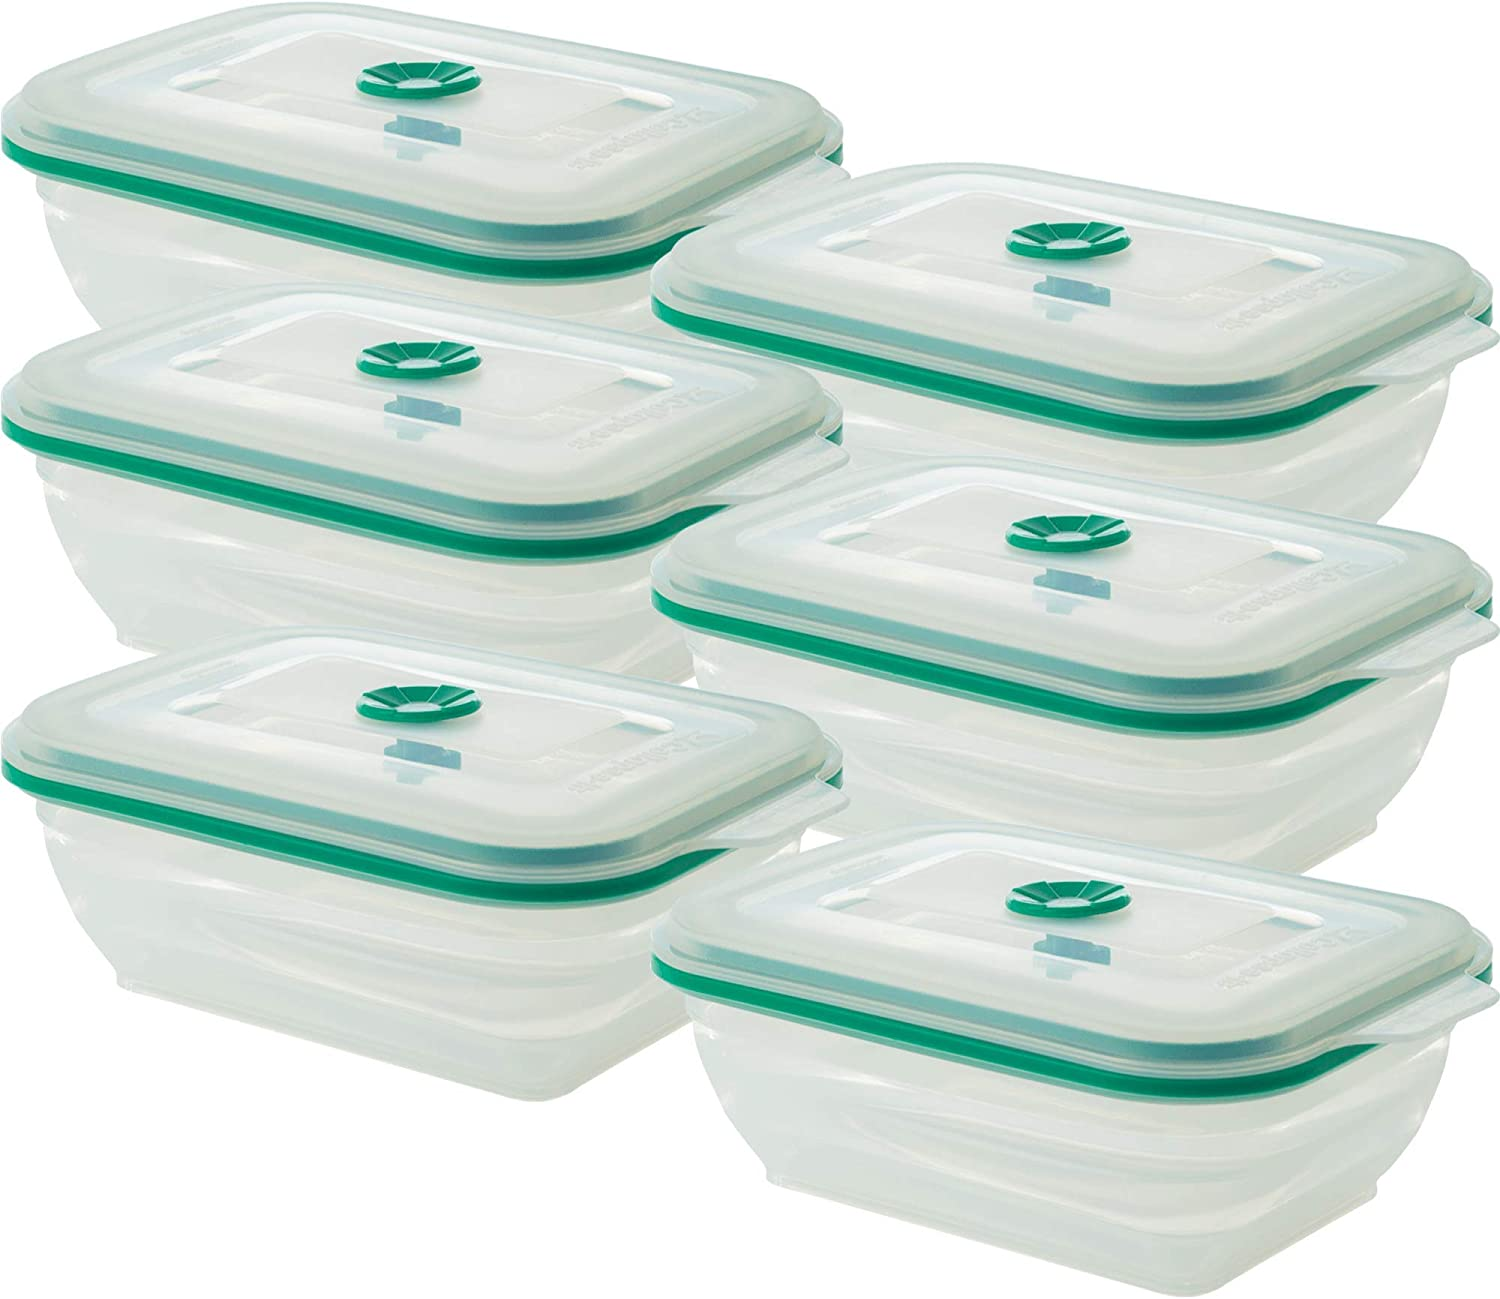 Collapse-it Silicone Food Storage Containers - BPA Free Airtight Silicone Lids, 6 Piece Set of 3-Cup Collapsible Lunch Box Containers - Oven, Microwave, Freezer Safe (Teal Rectangle) with Bonus eBook